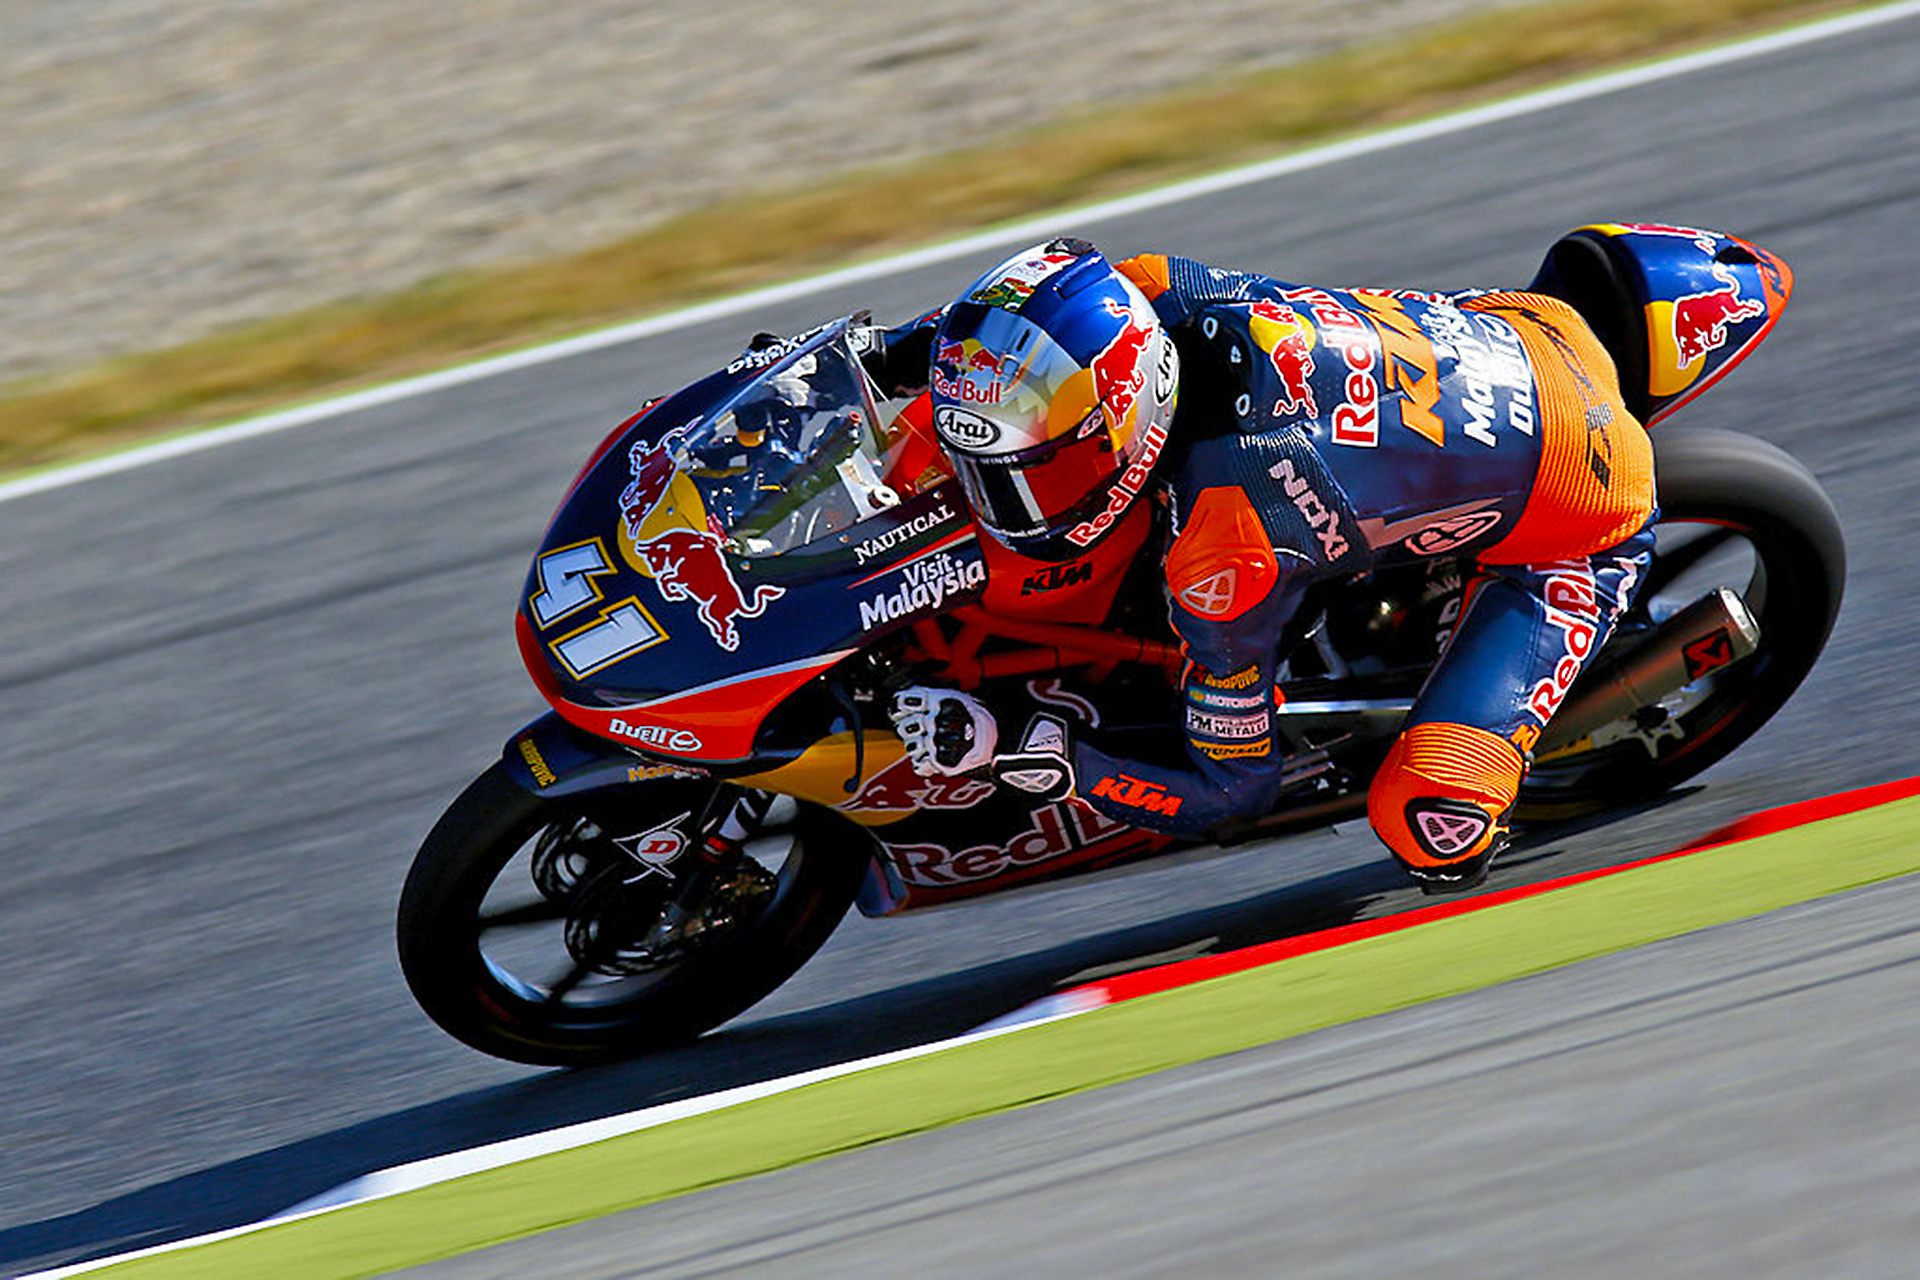 Brad Binder Moto3 World Championship